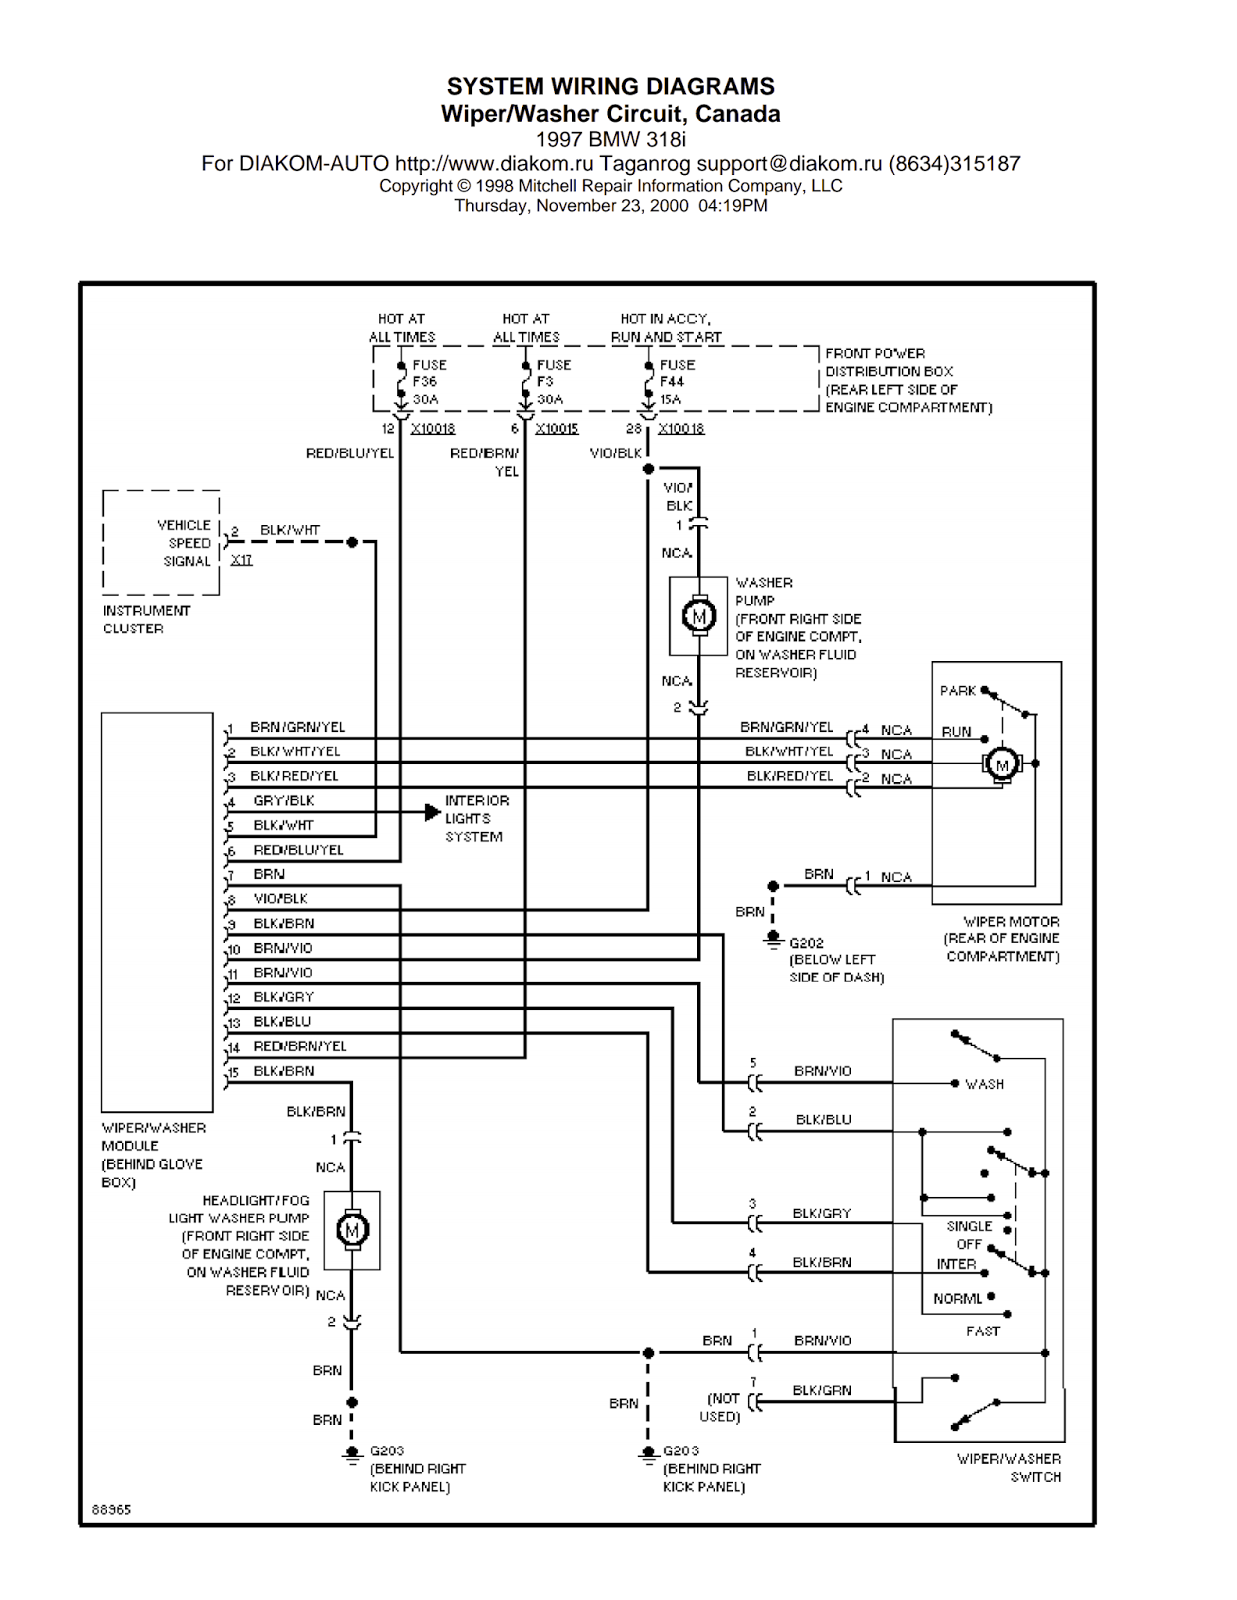 Wiring Diagrams and Free Manual Ebooks: 1997 BMW 318i